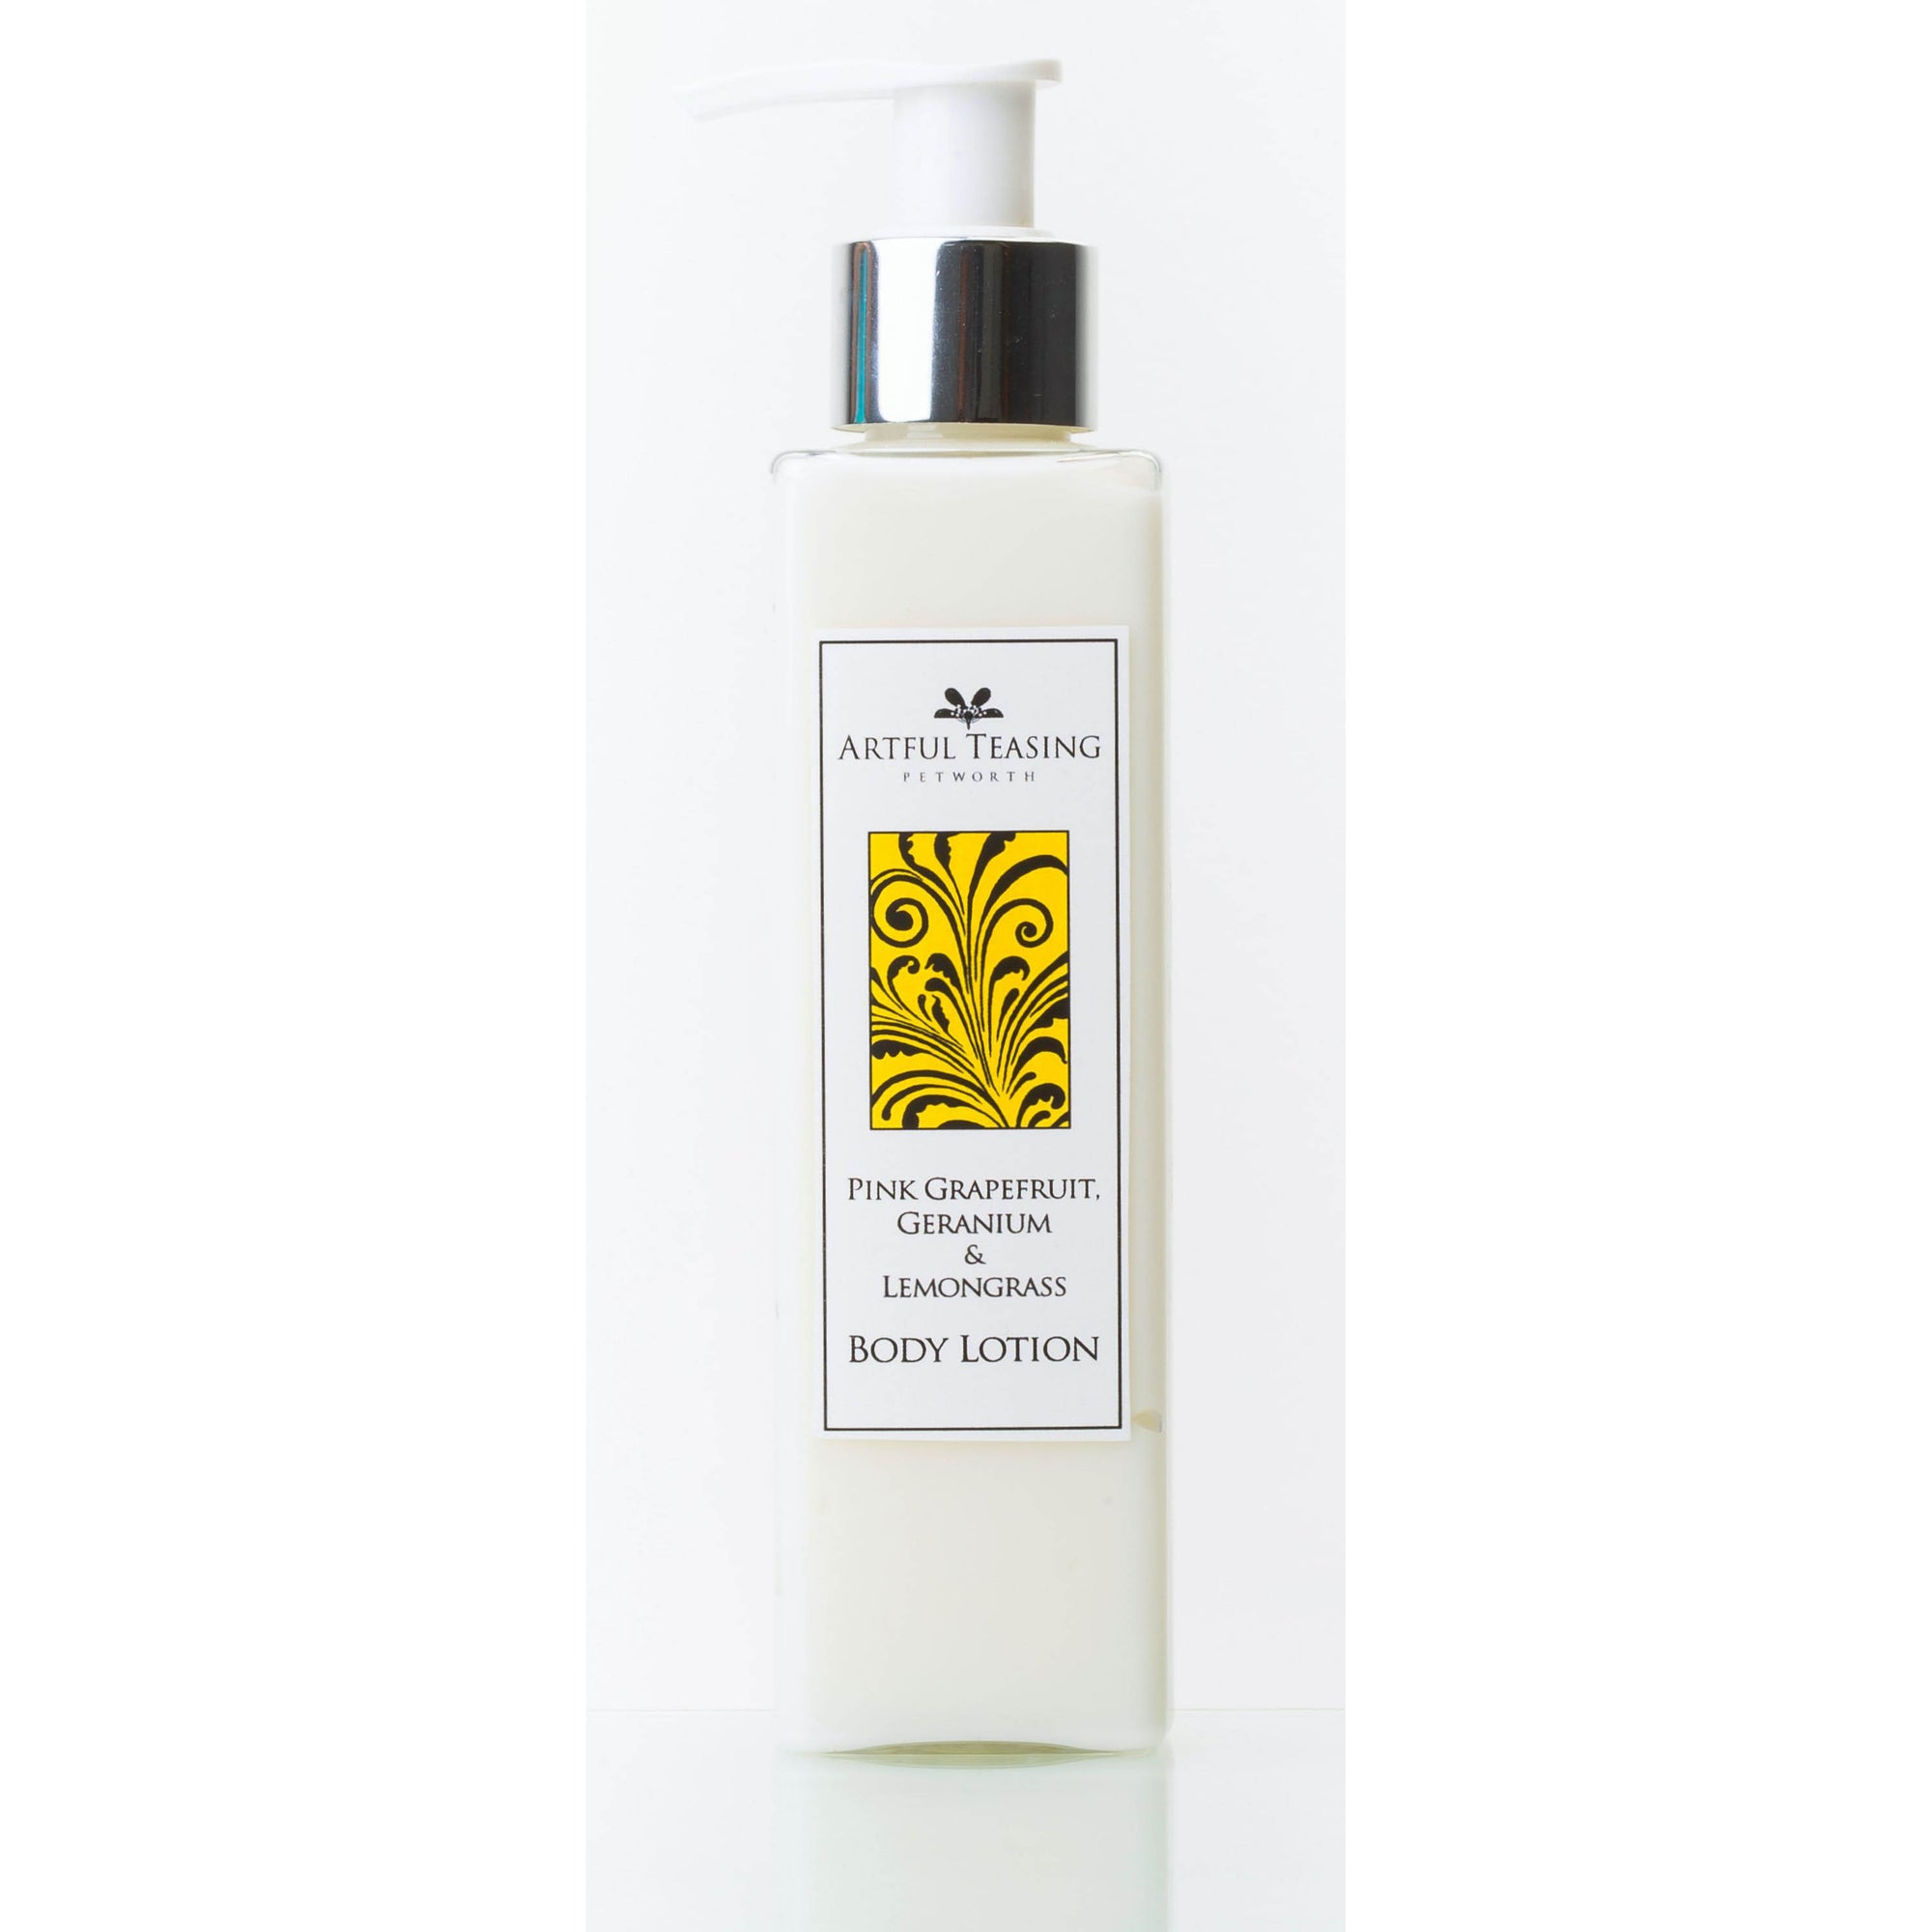 Pink Grapefruit, Geranium & Lemongrass Body Lotion 200ml